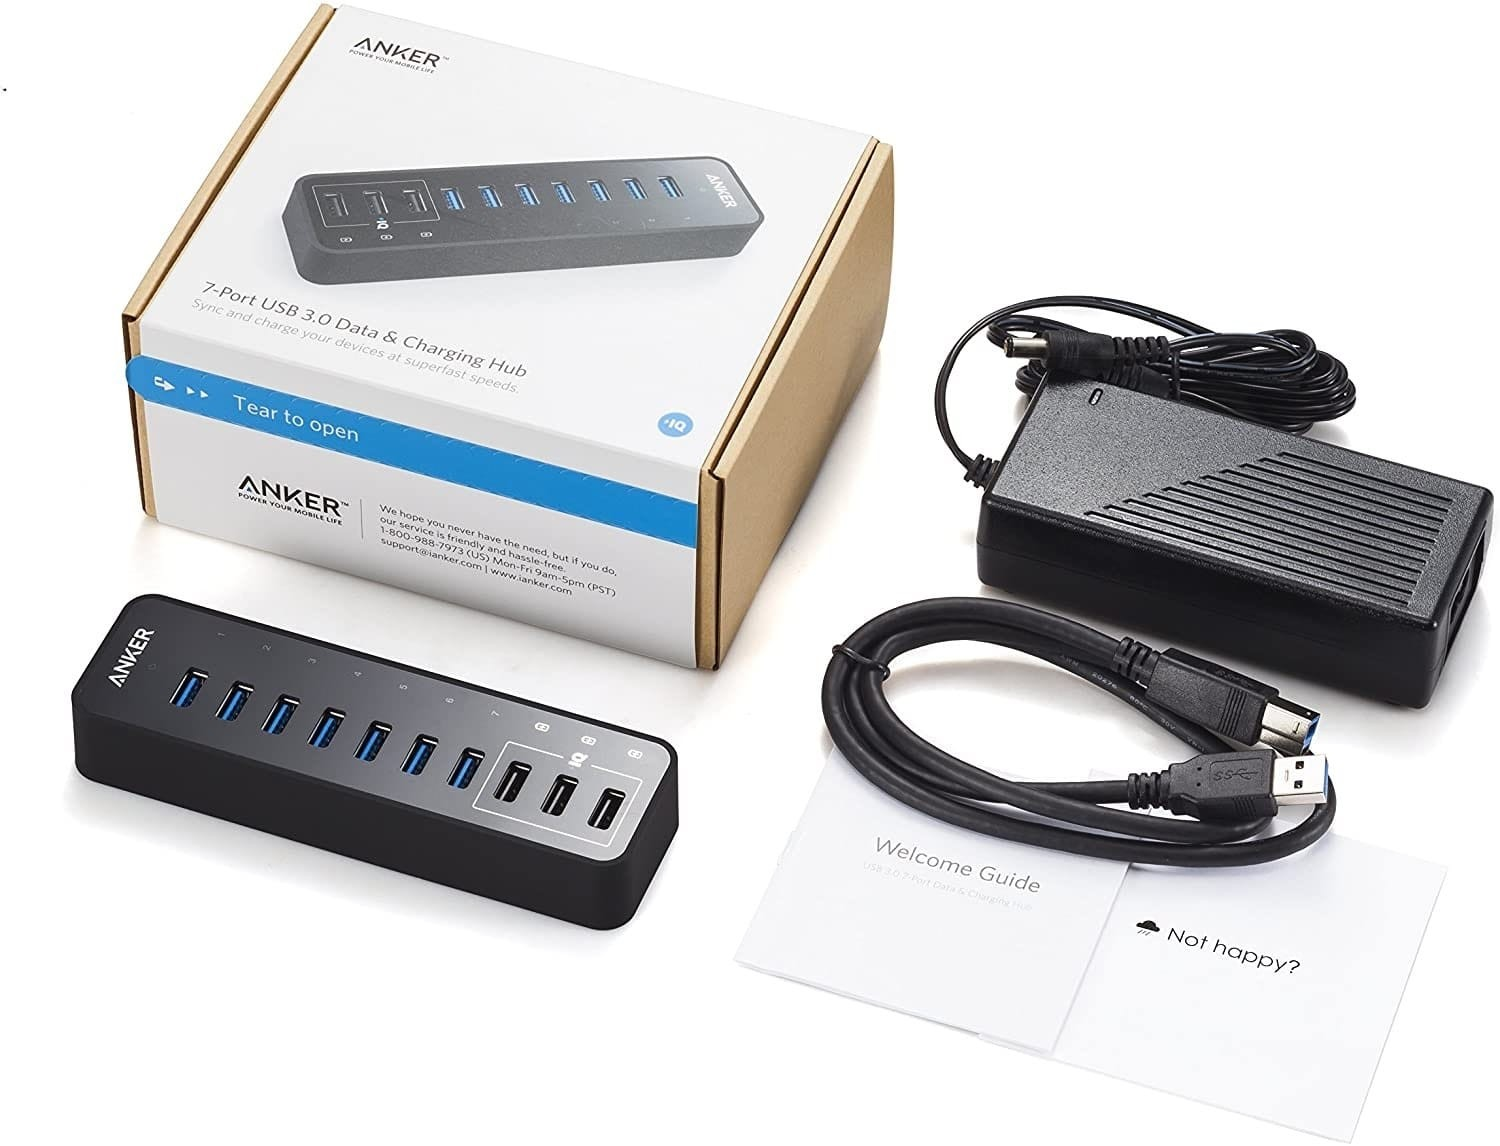 Anker 10-Port 60W USB 3.0 Hub with 7 Data Transfer Ports and 3 PowerIQ Charging Ports, AK-A7515111